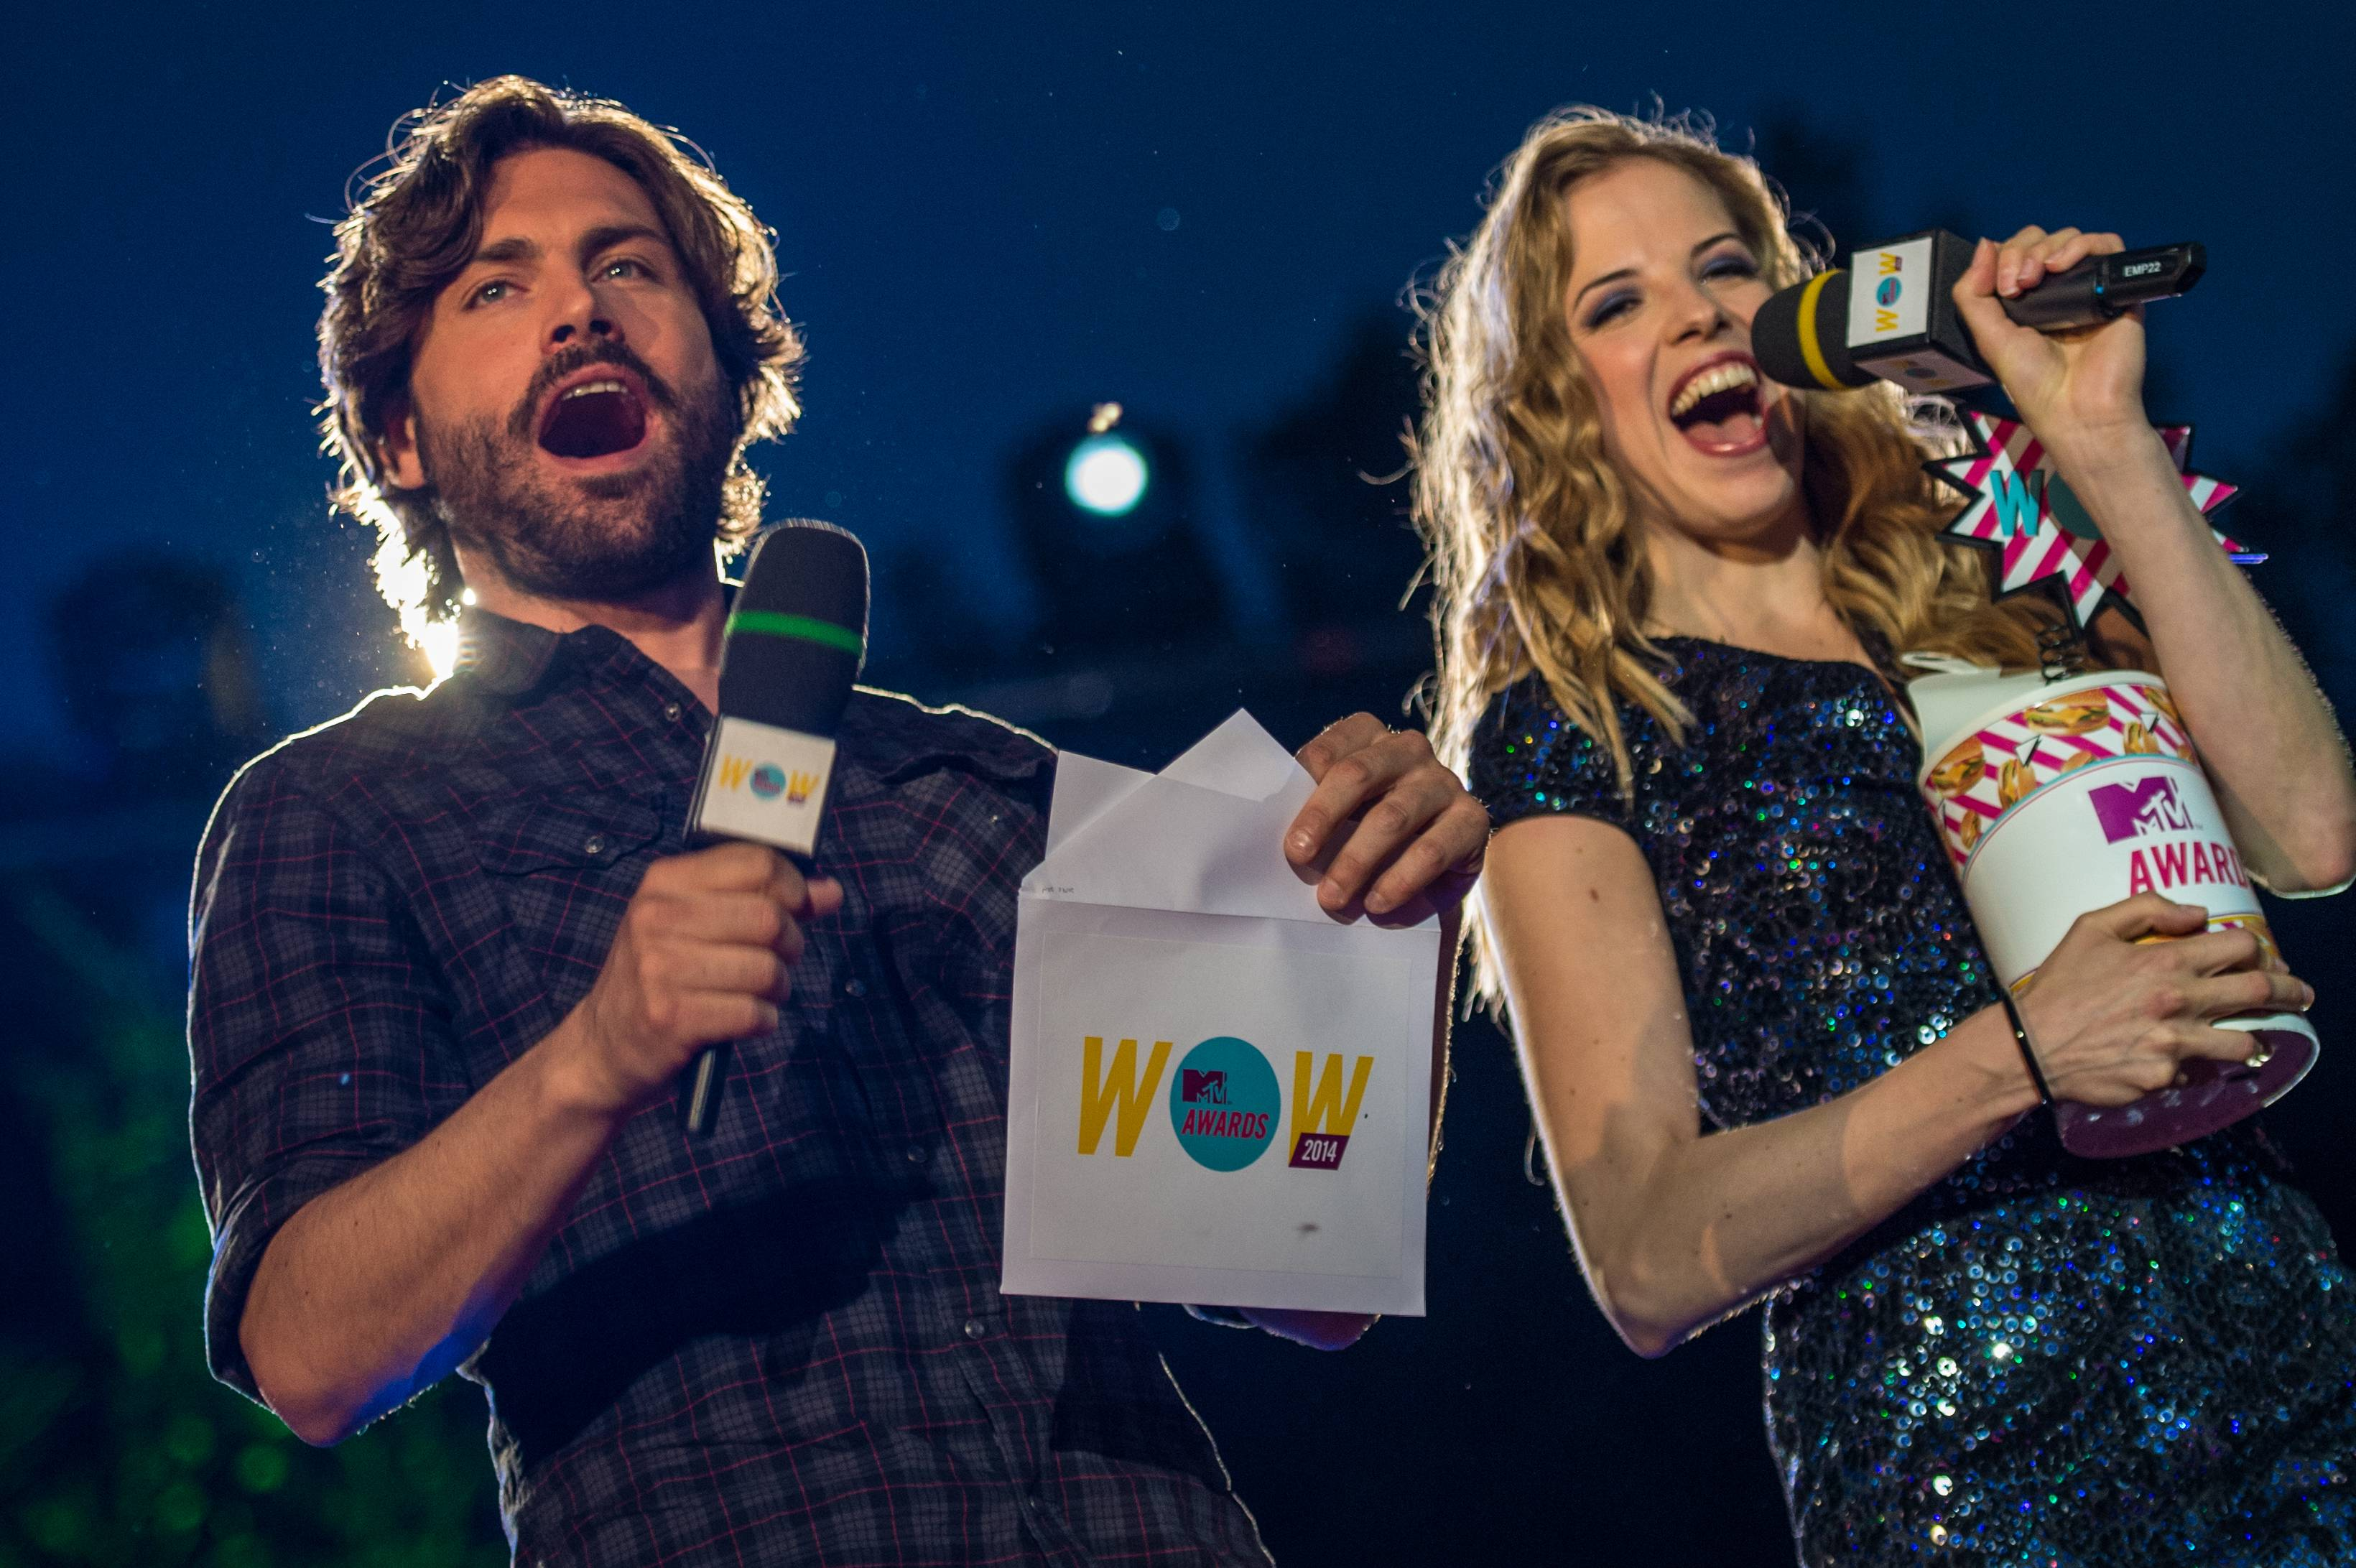 foto MTV awards 2014 Firenze 21 giugno